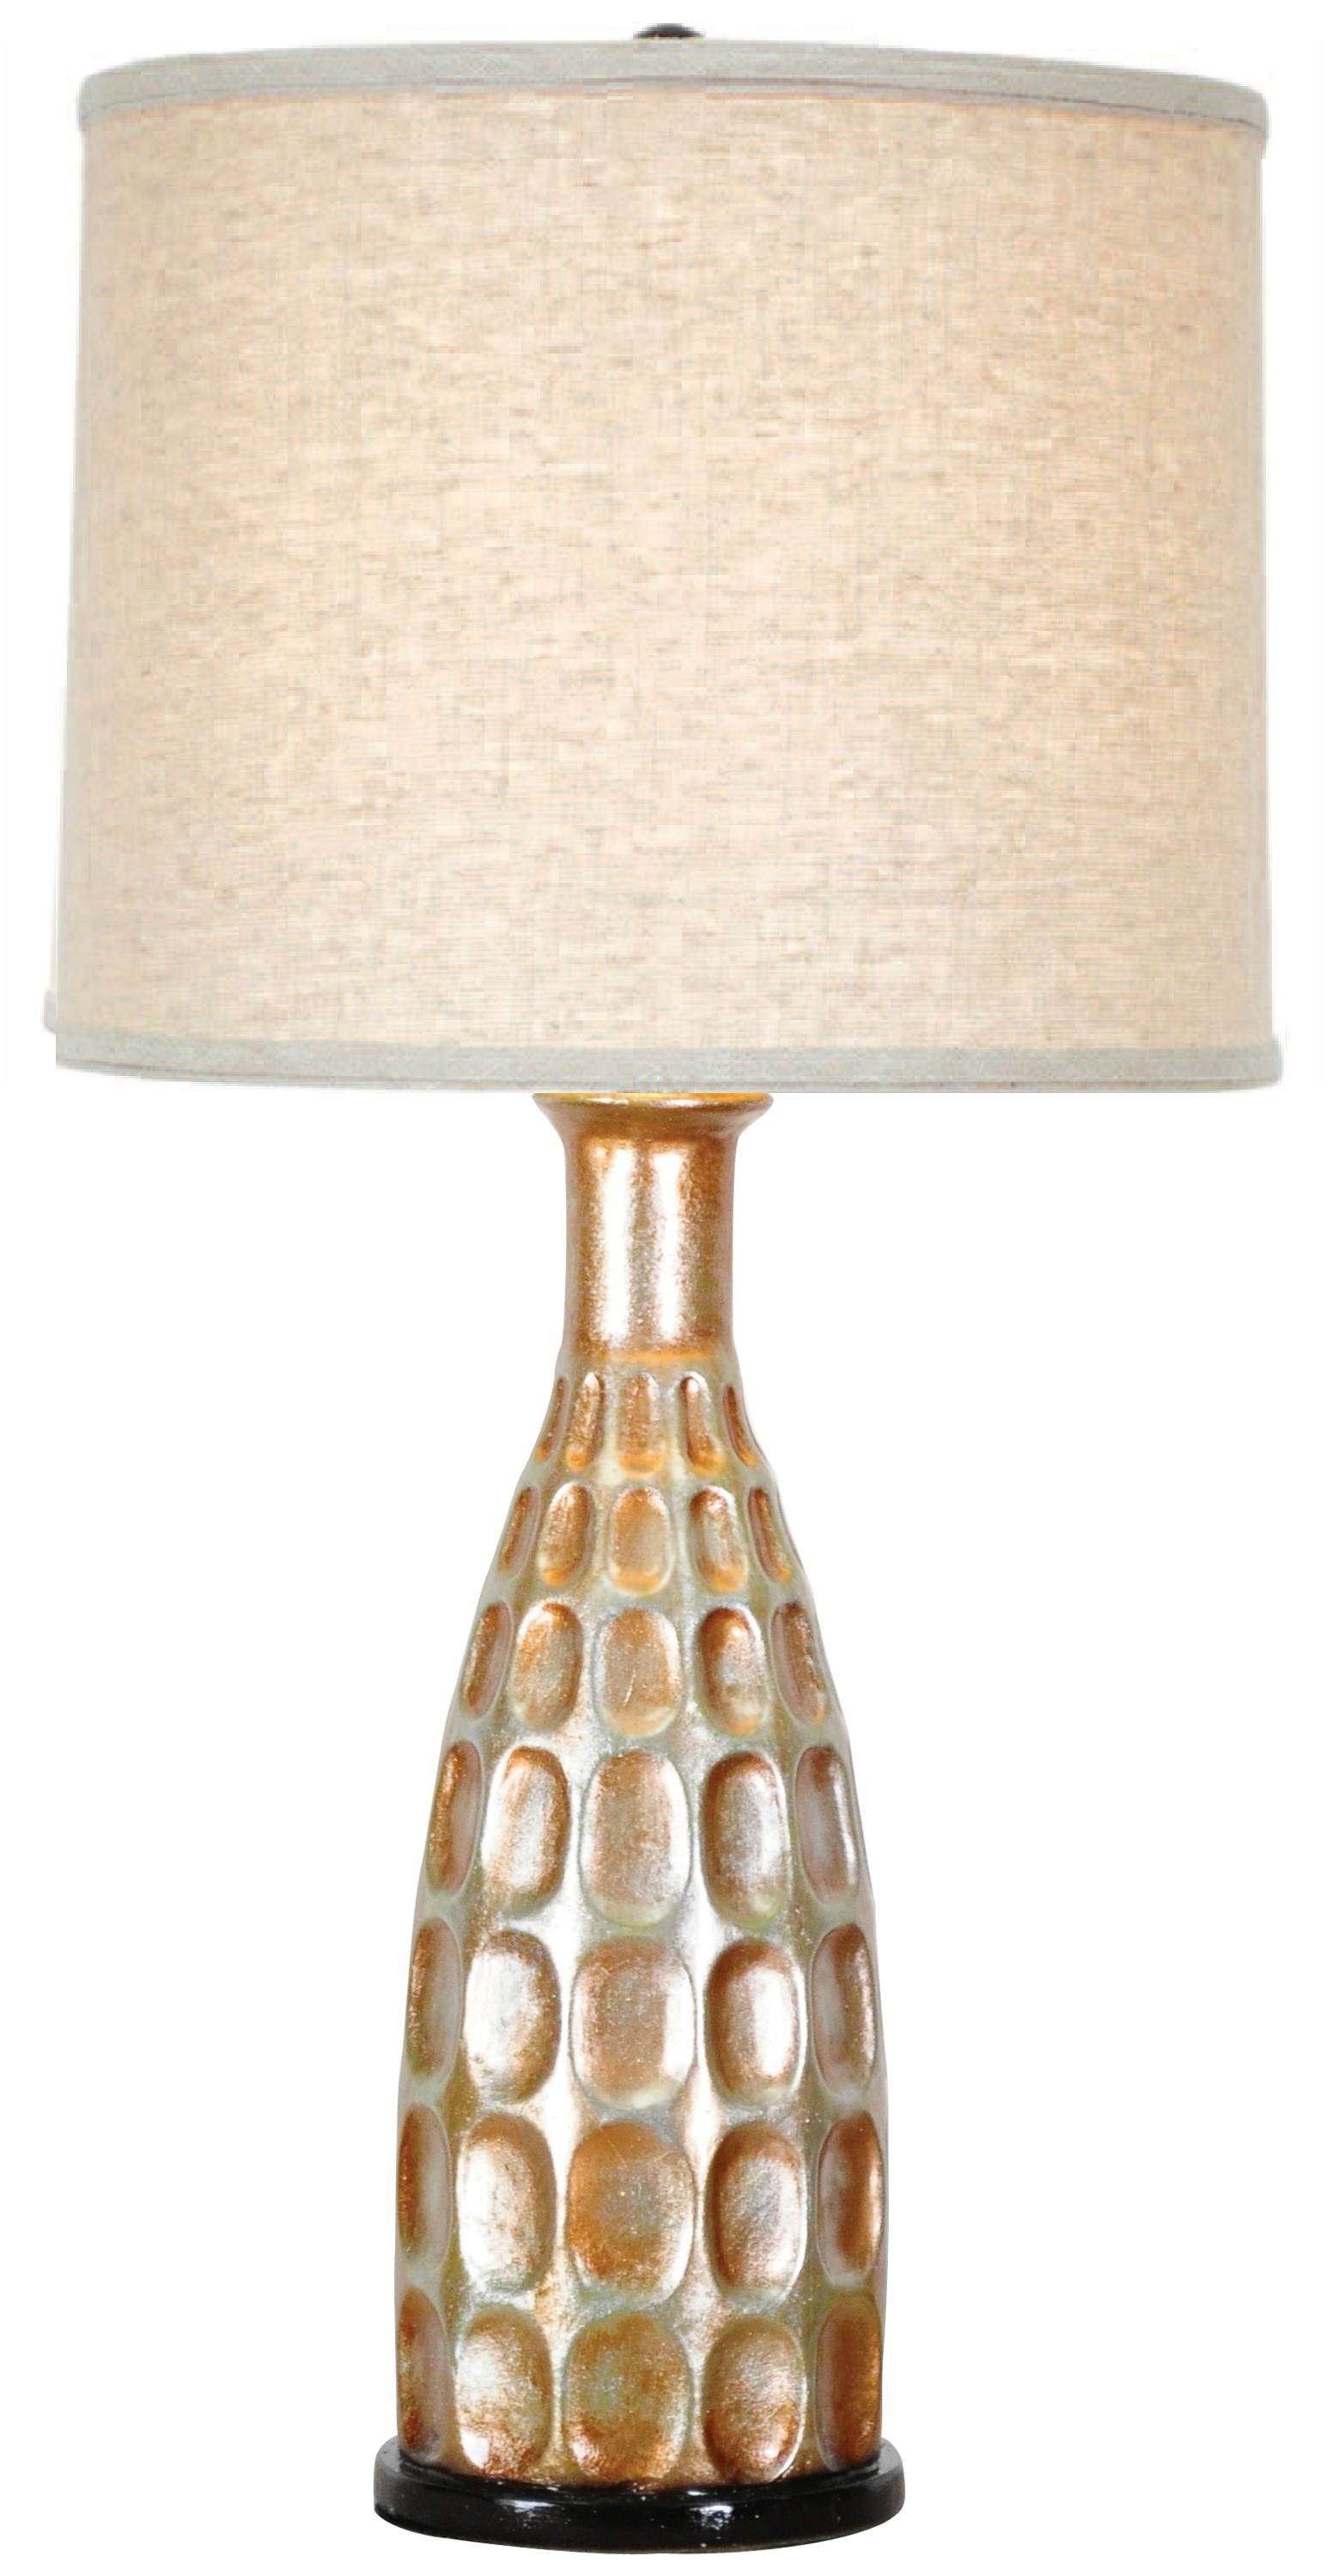 Artisan Lighting U0026 Home Decor, Inc. Image 10